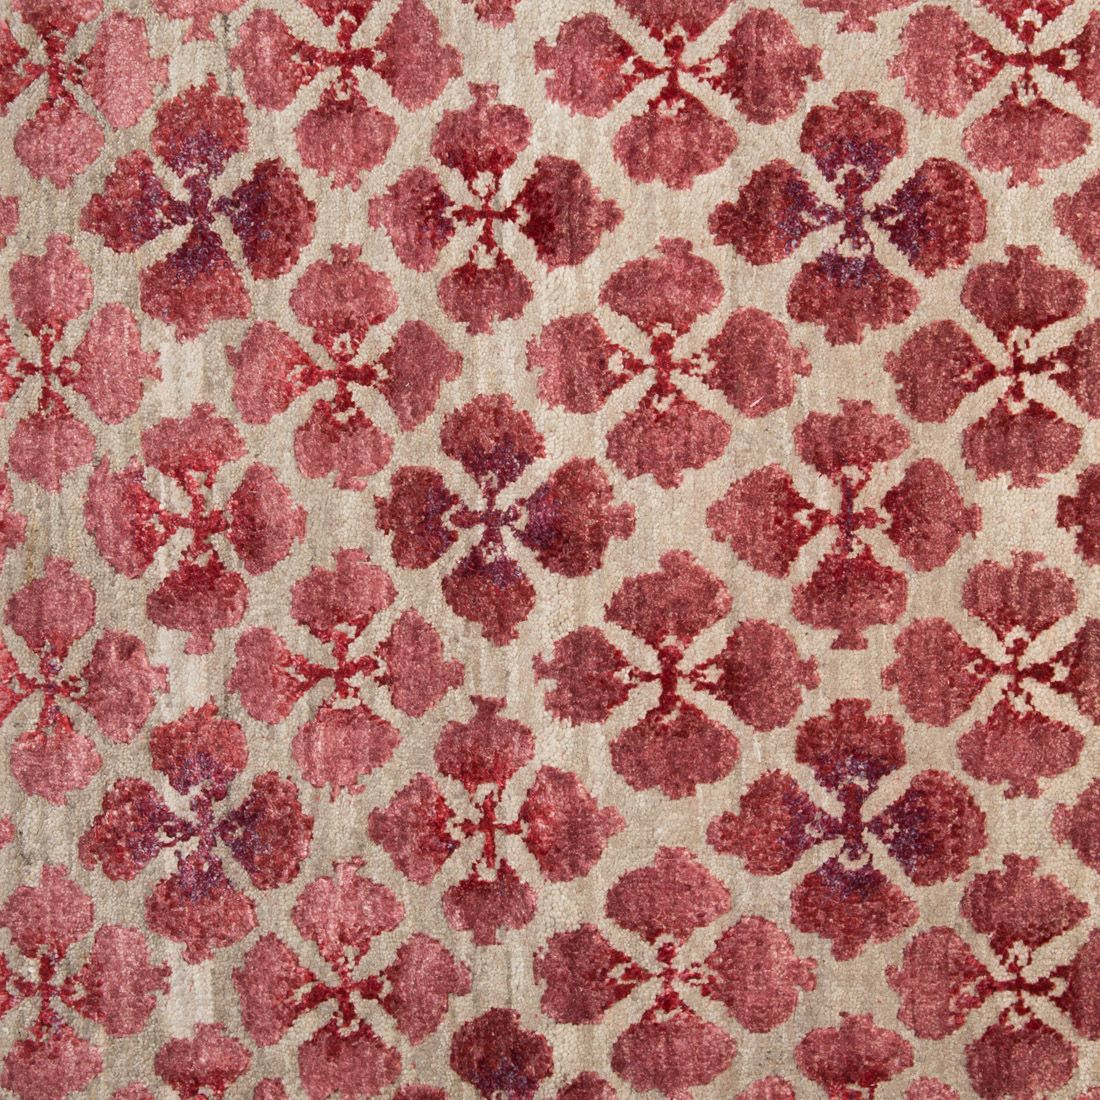 'Sakura' from the Galbraith and Paul Rug Collection for Holland and Sherry Shown in colour 'Sangria' in a Persian Knot Construction